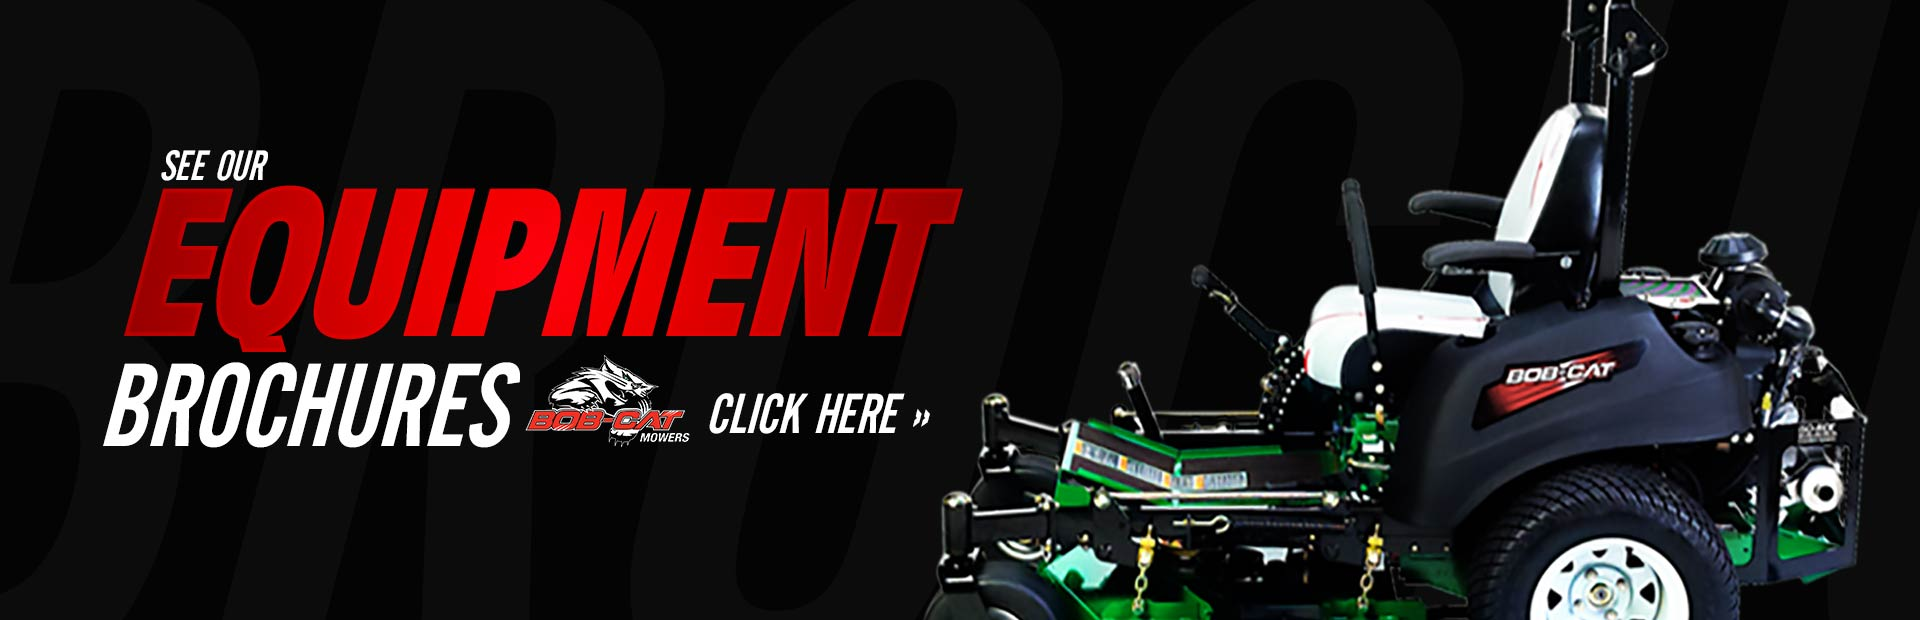 Click here to view BOB-CAT® equipment brochures.